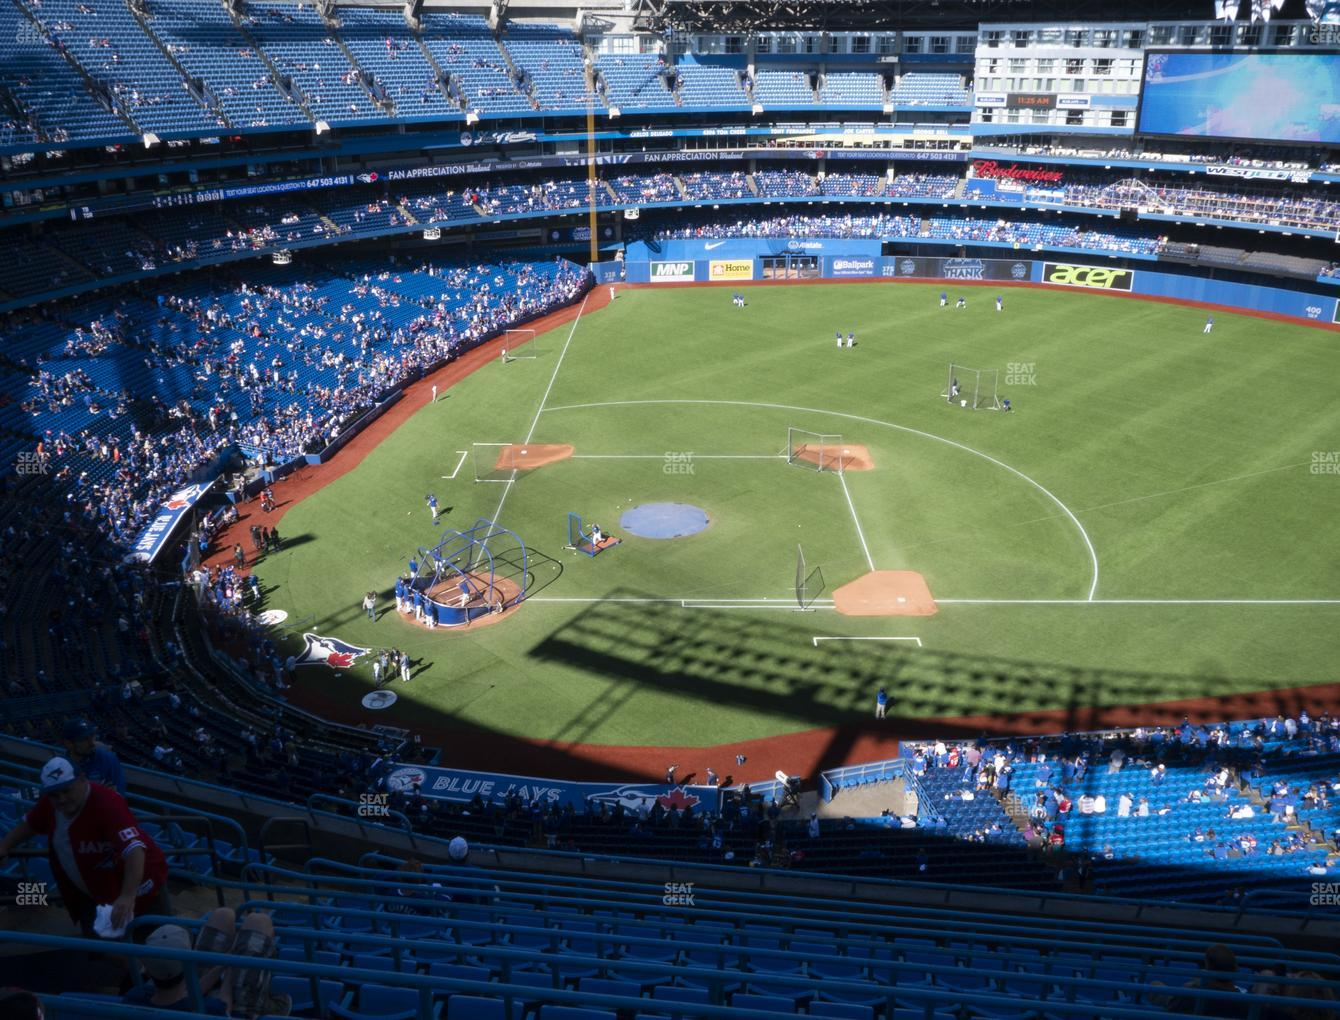 Toronto Blue Jays at Rogers Centre Section 519 R View